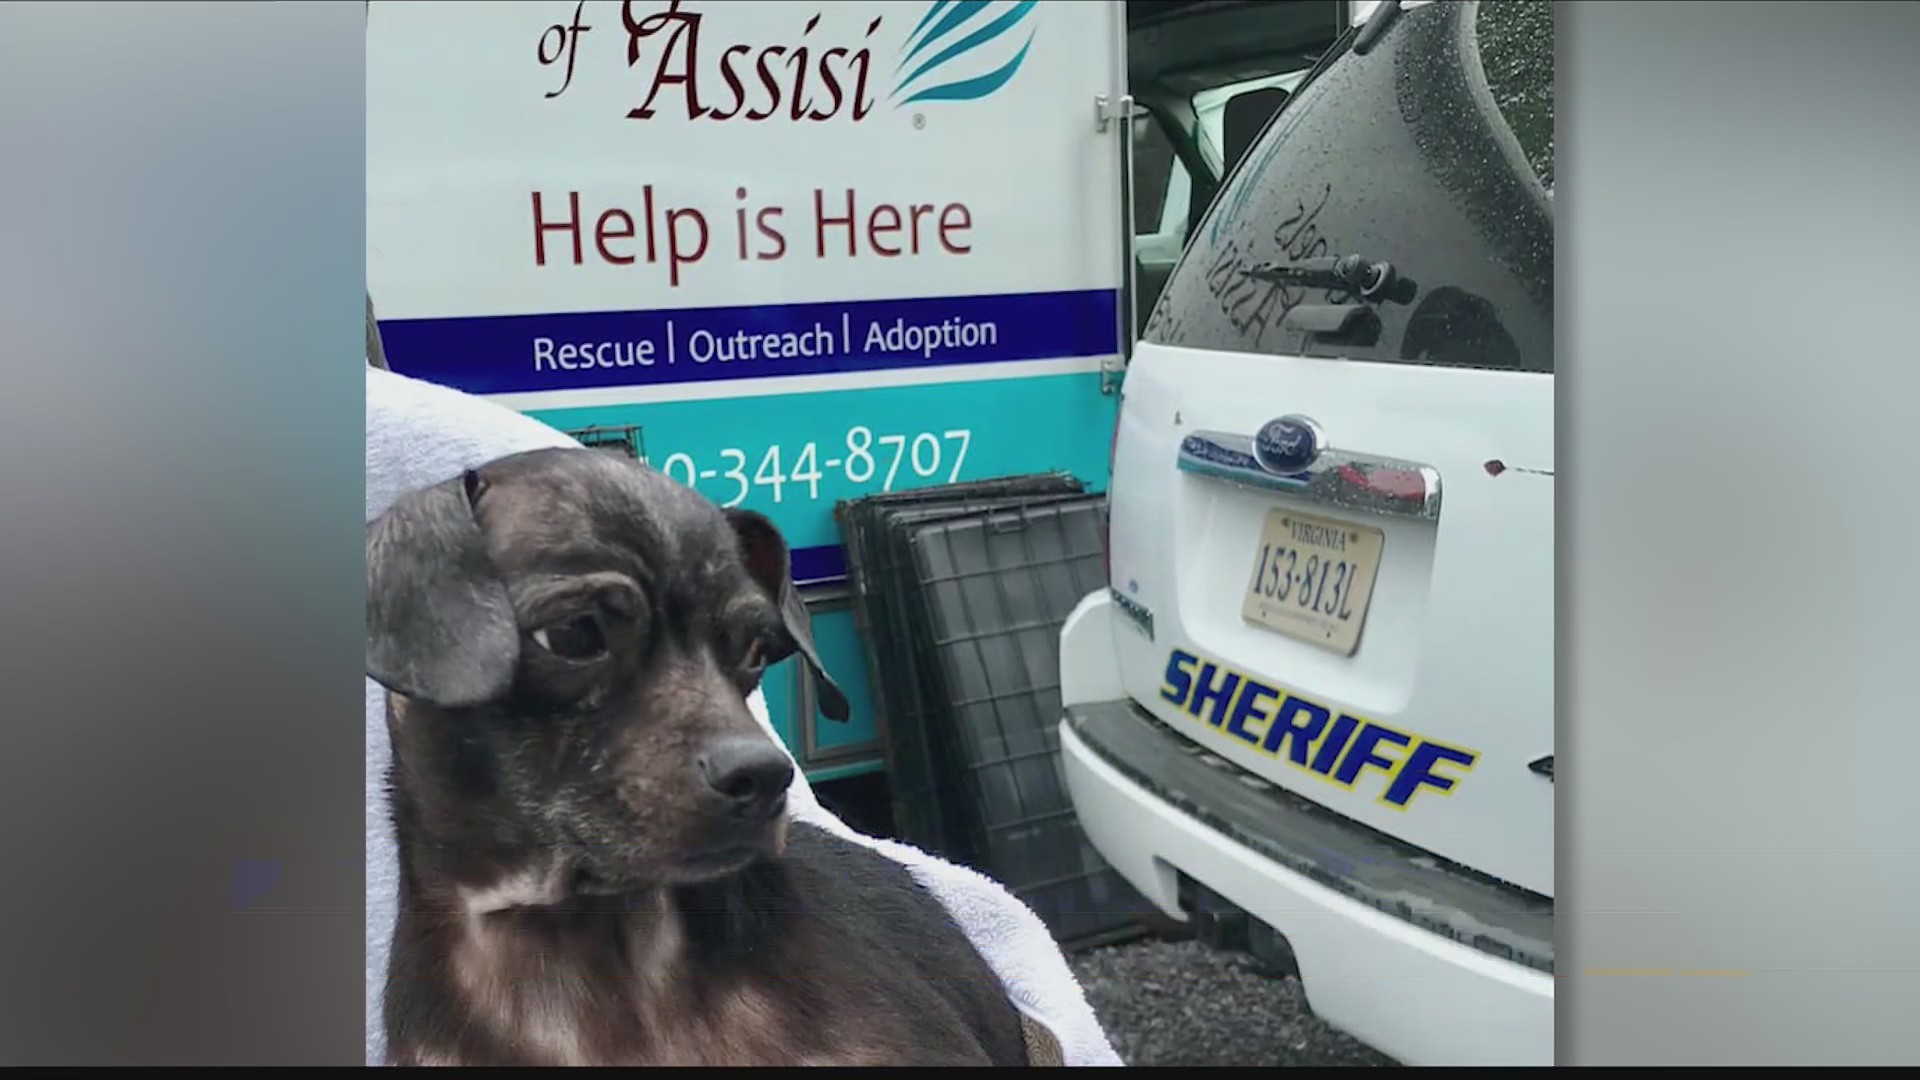 Angels_of_Assisi_rescues_60_dogs_from_ho_0_20190513040445